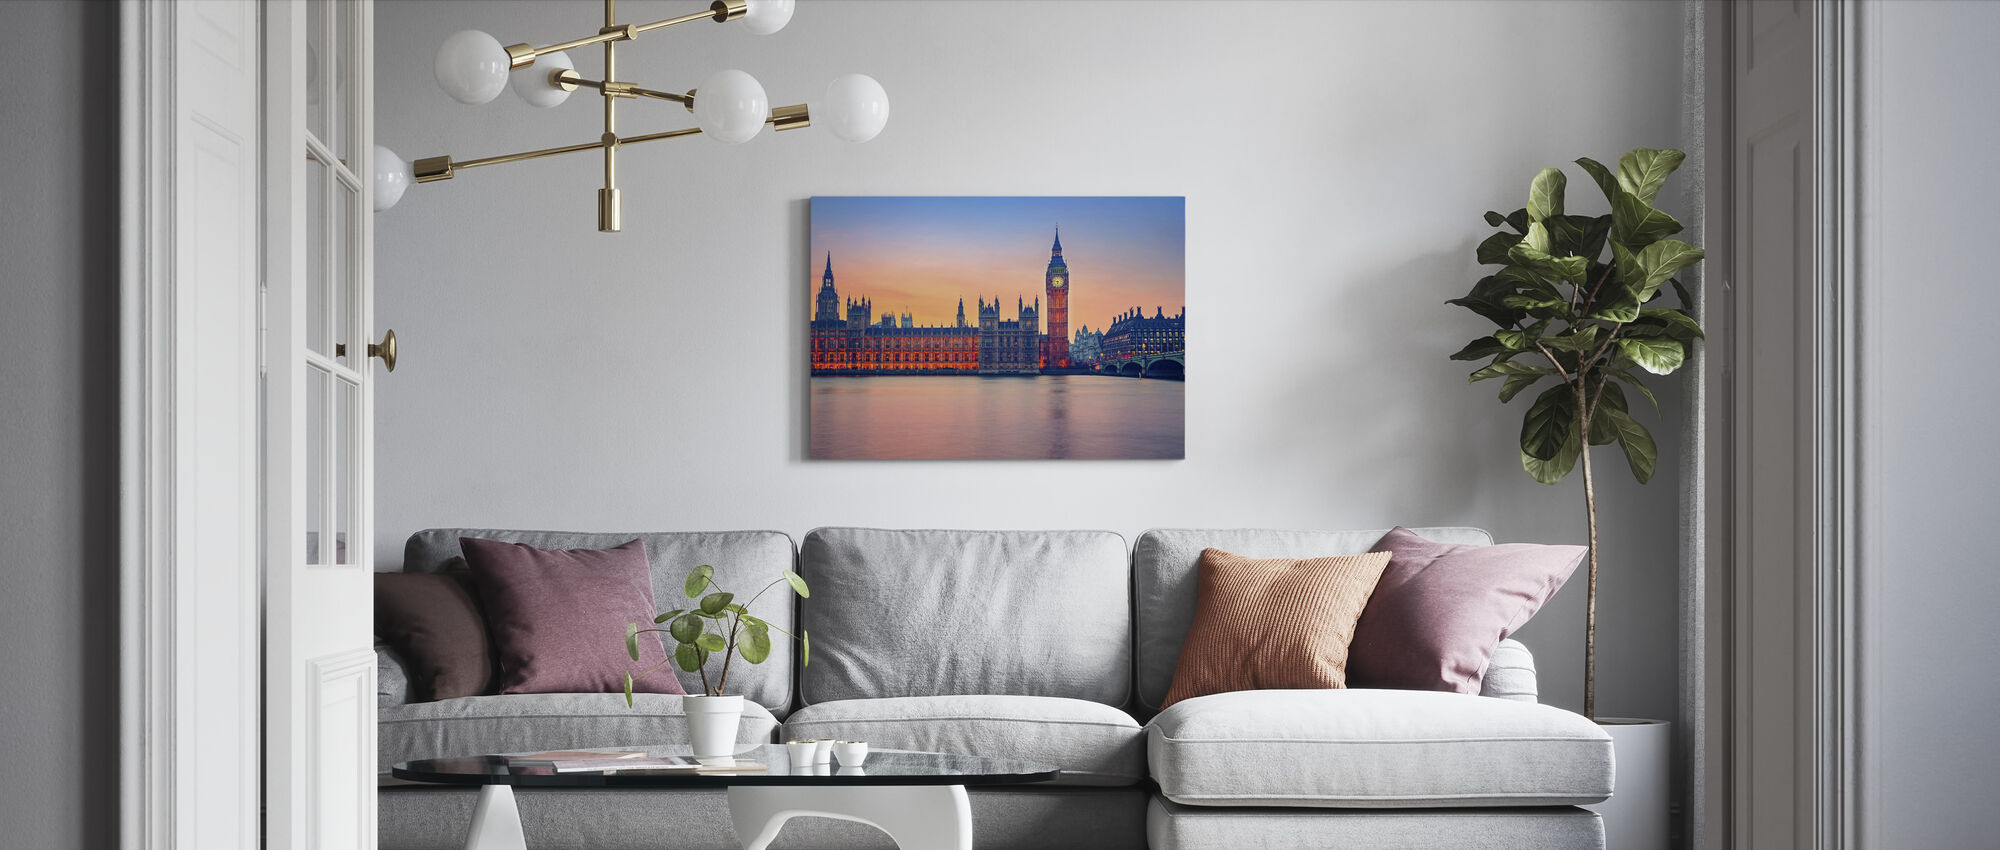 Big Ben and Houses of Parliament - Canvas print - Living Room